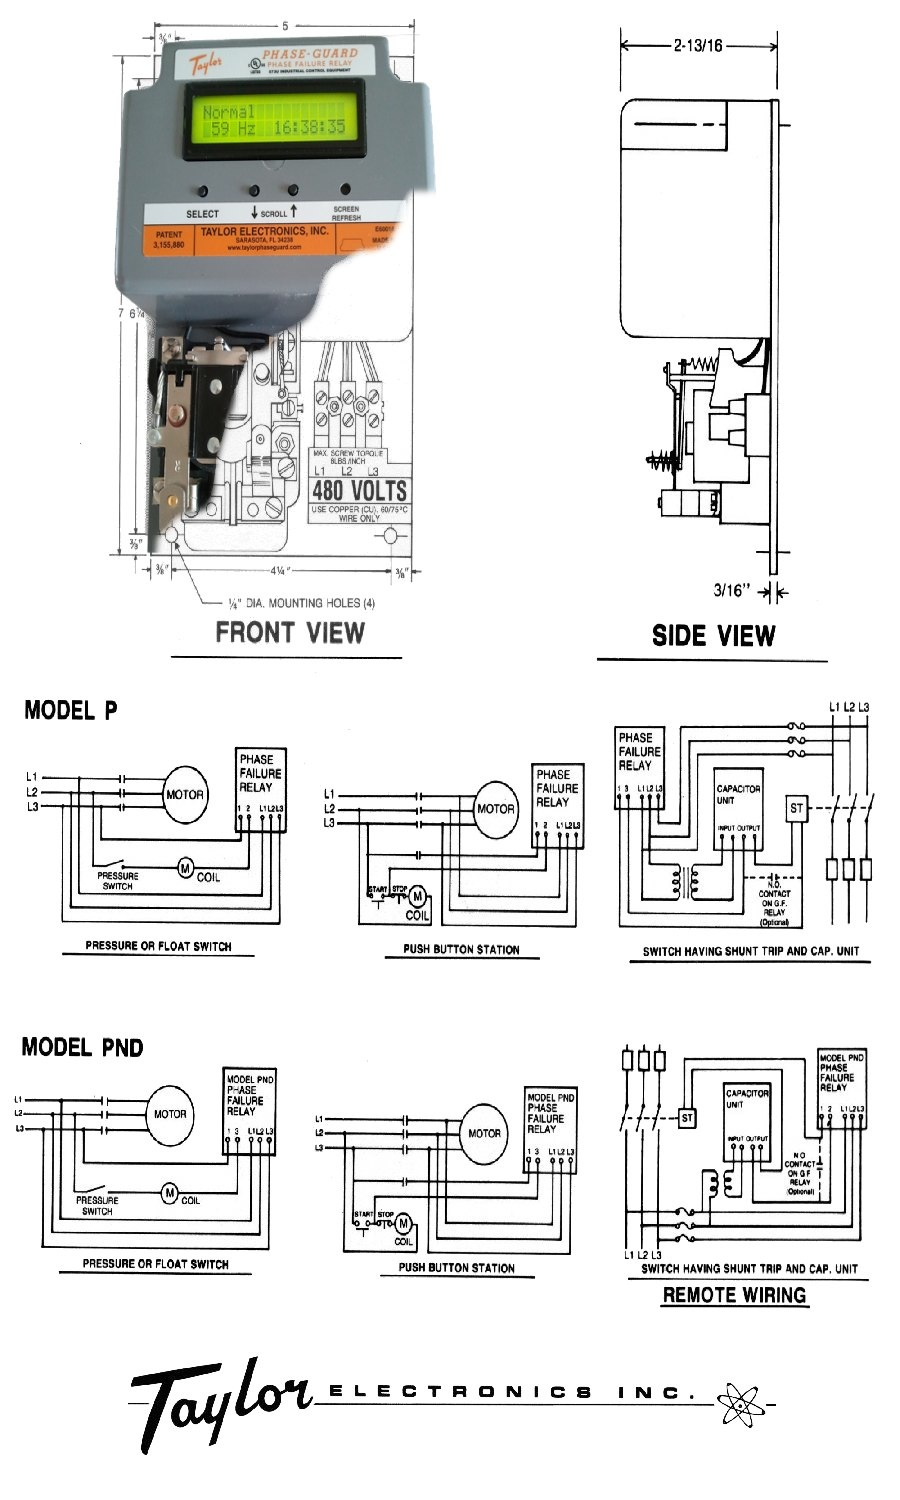 taylor forklift wiring diagrams auto electrical wiring diagram tomberlin emerge wiring diagram taylor forklift wiring [ 900 x 1500 Pixel ]